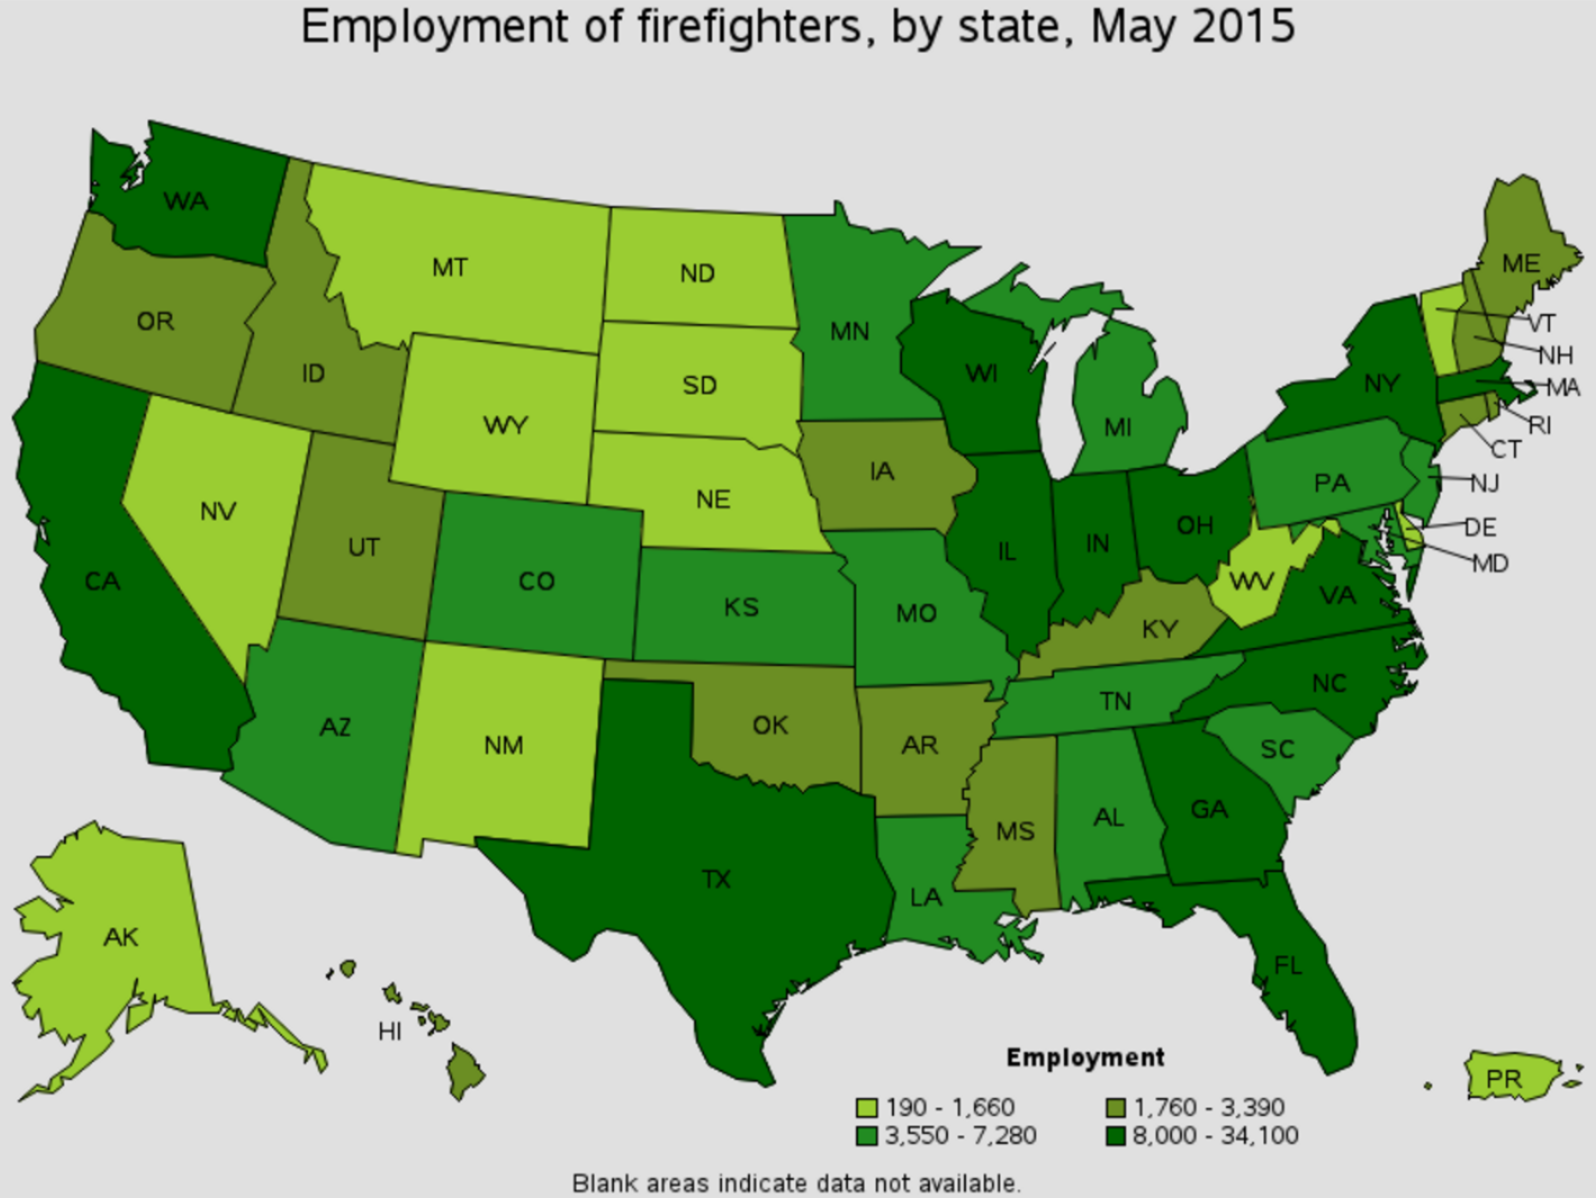 firefighter job outlook by state Kittanning Pennsylvania